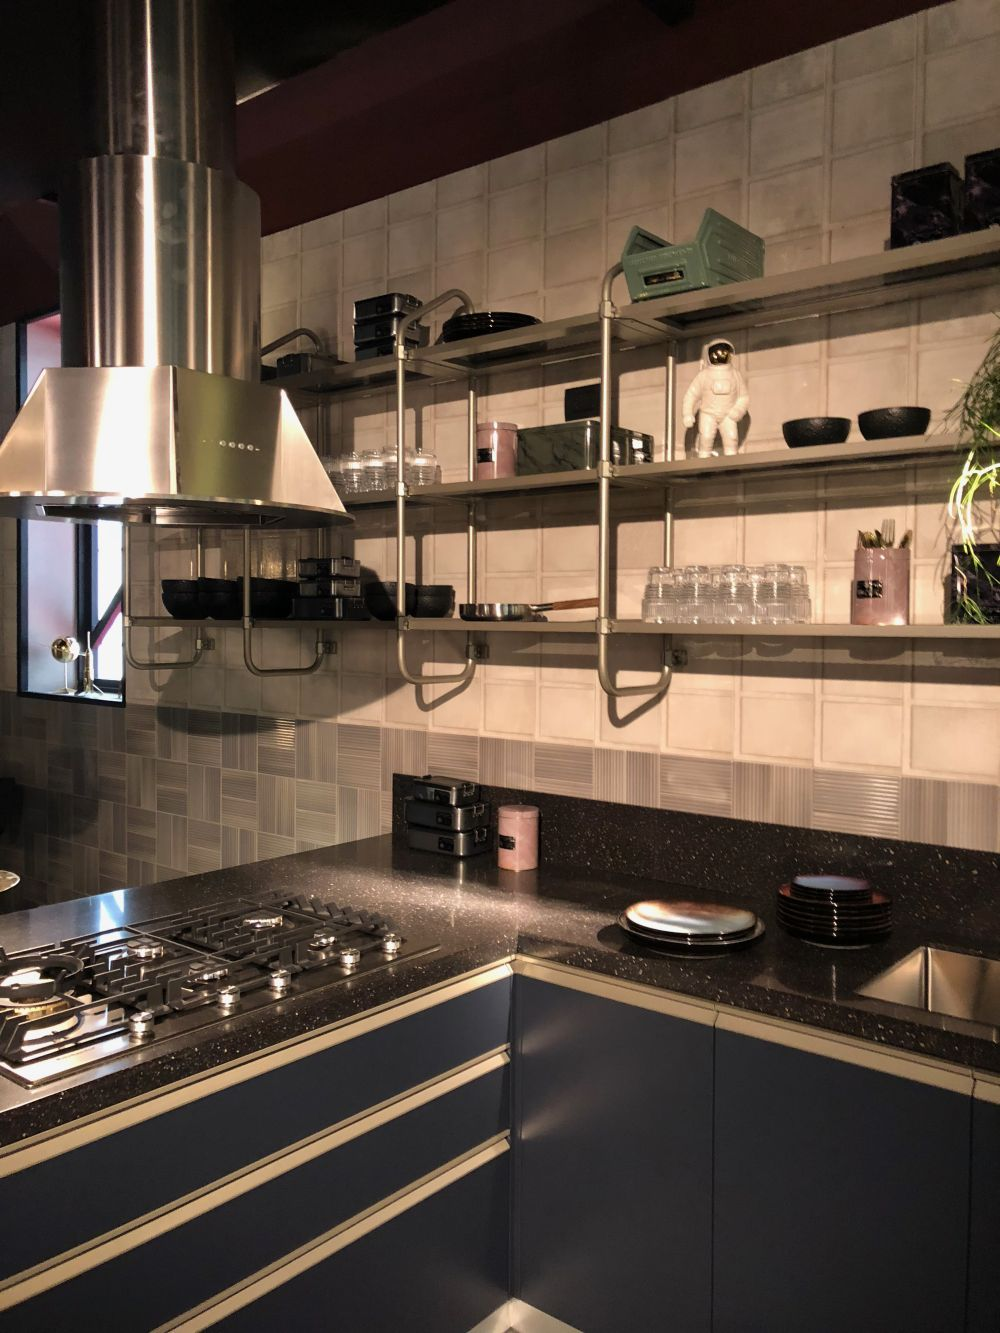 Cucina Kitchen Appliances Eurocucina 2018 Shows New Trends For Modern And Luxury Kitchens